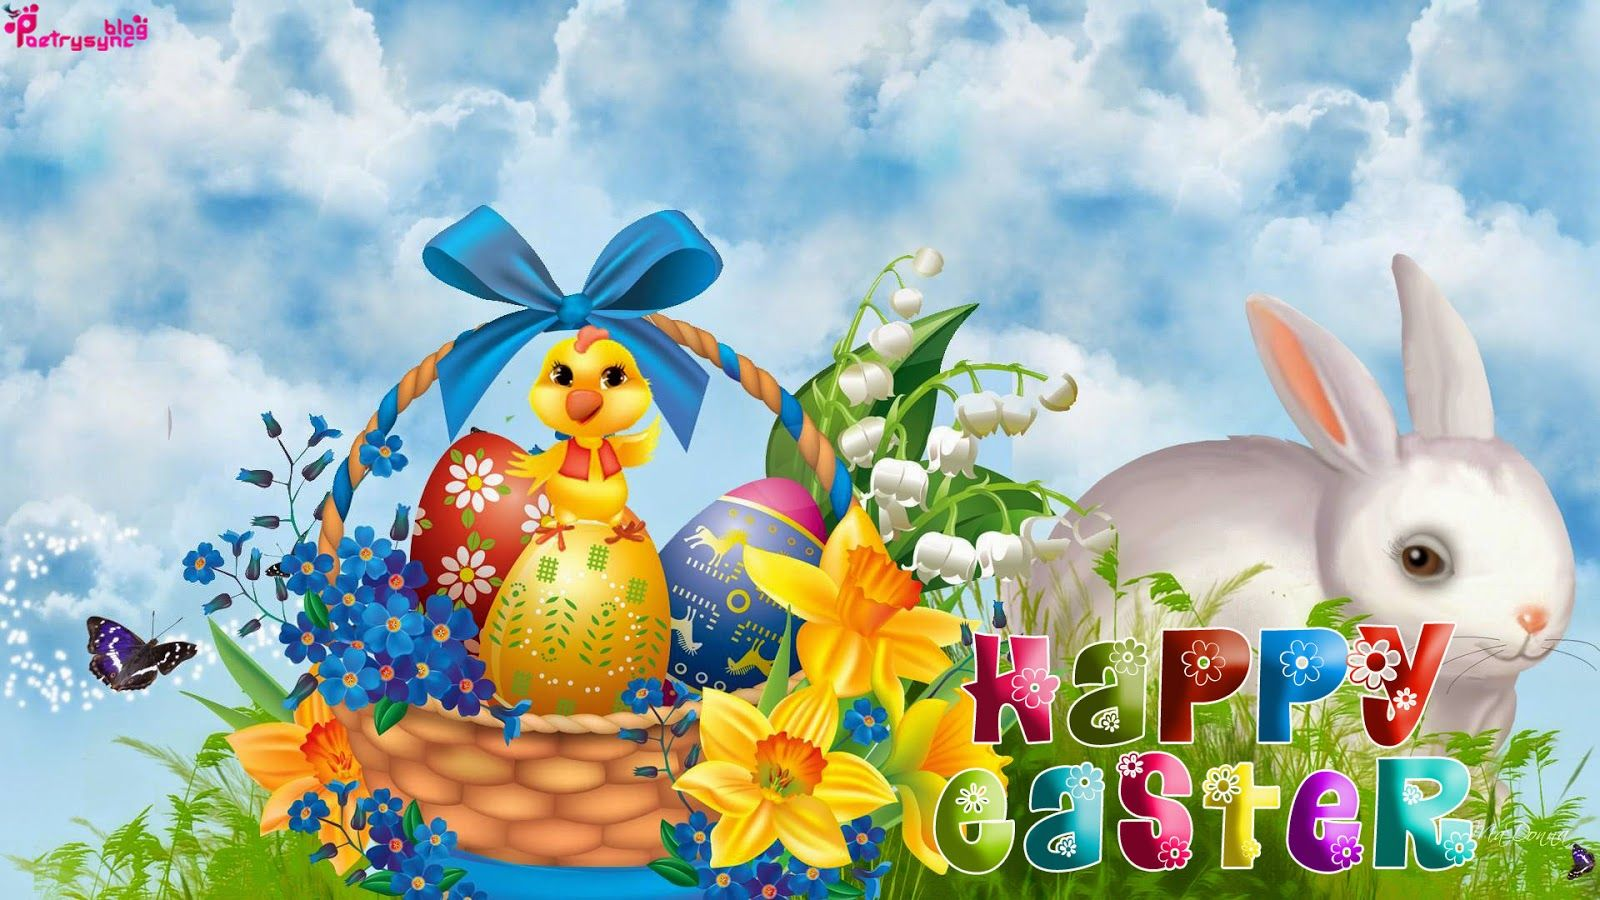 1000 Images About Easter Wallpaper On Pinterest: Easter Sunday HD Wallpaper With Wishes Message